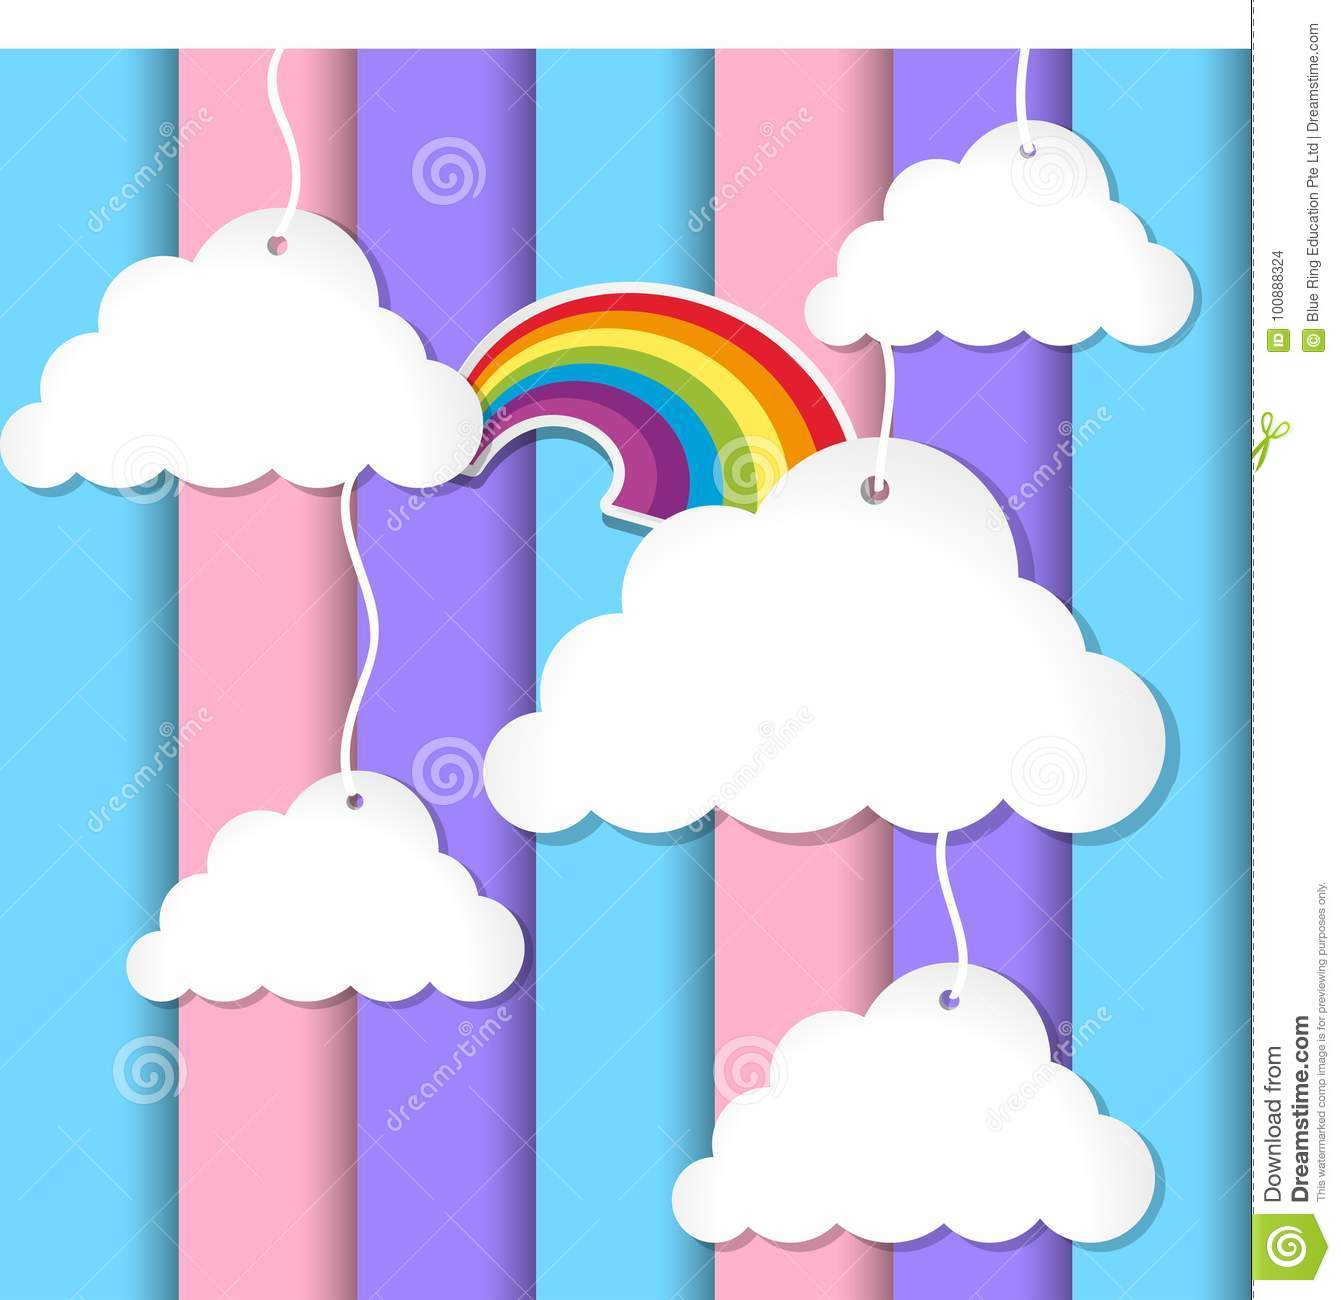 Background design with clouds and rainbow on colorful sky